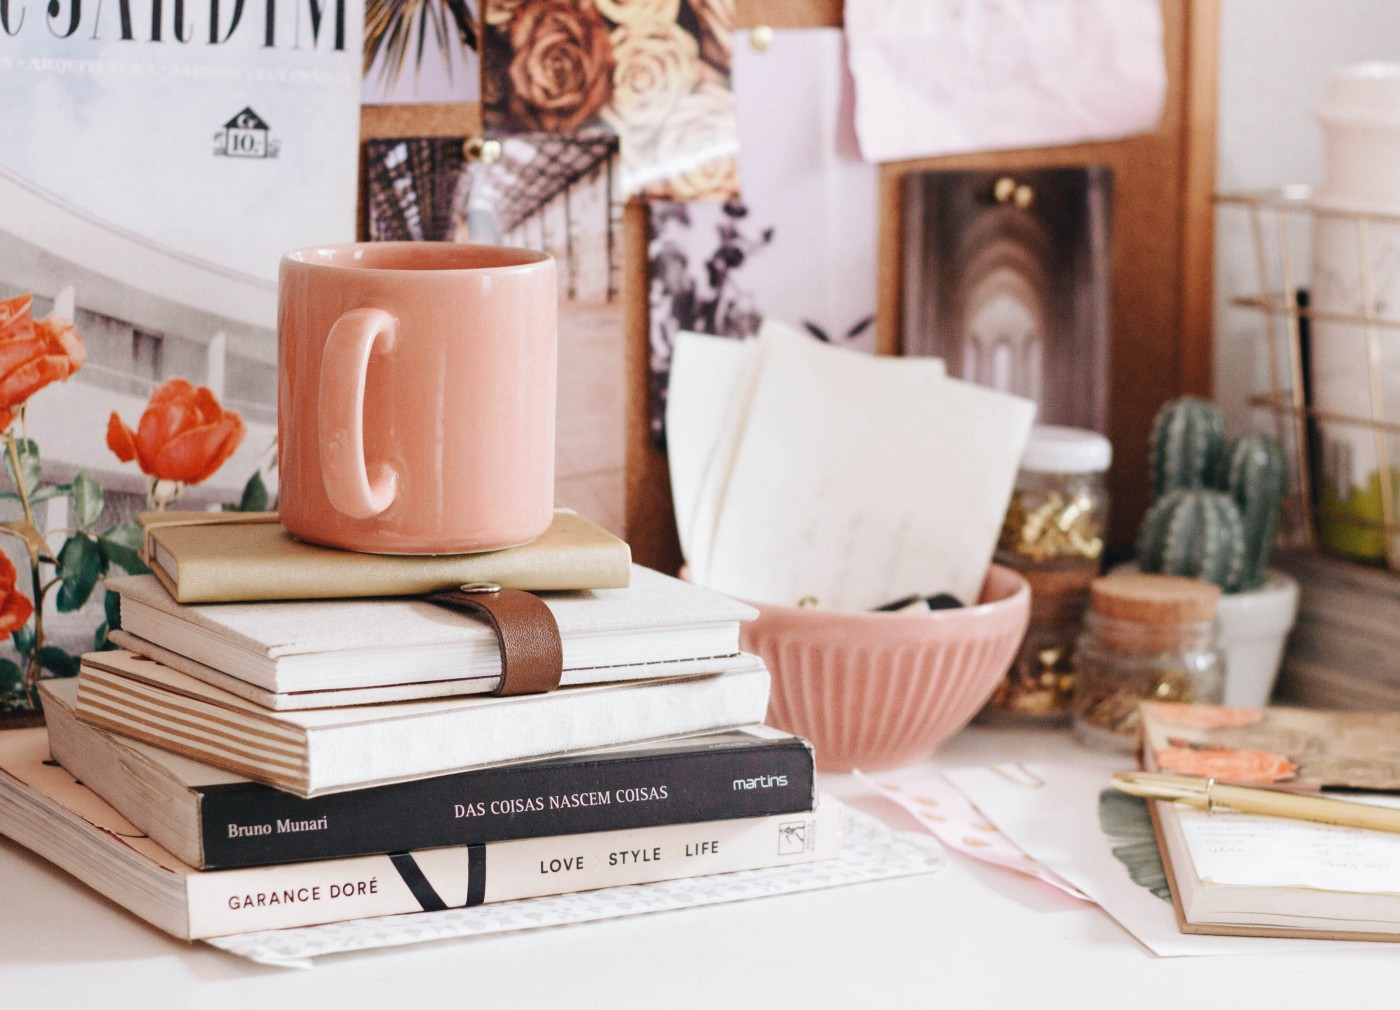 A cluttered, cosy desk space with a stack of novels and notebooks, and a pale pink mug on top.